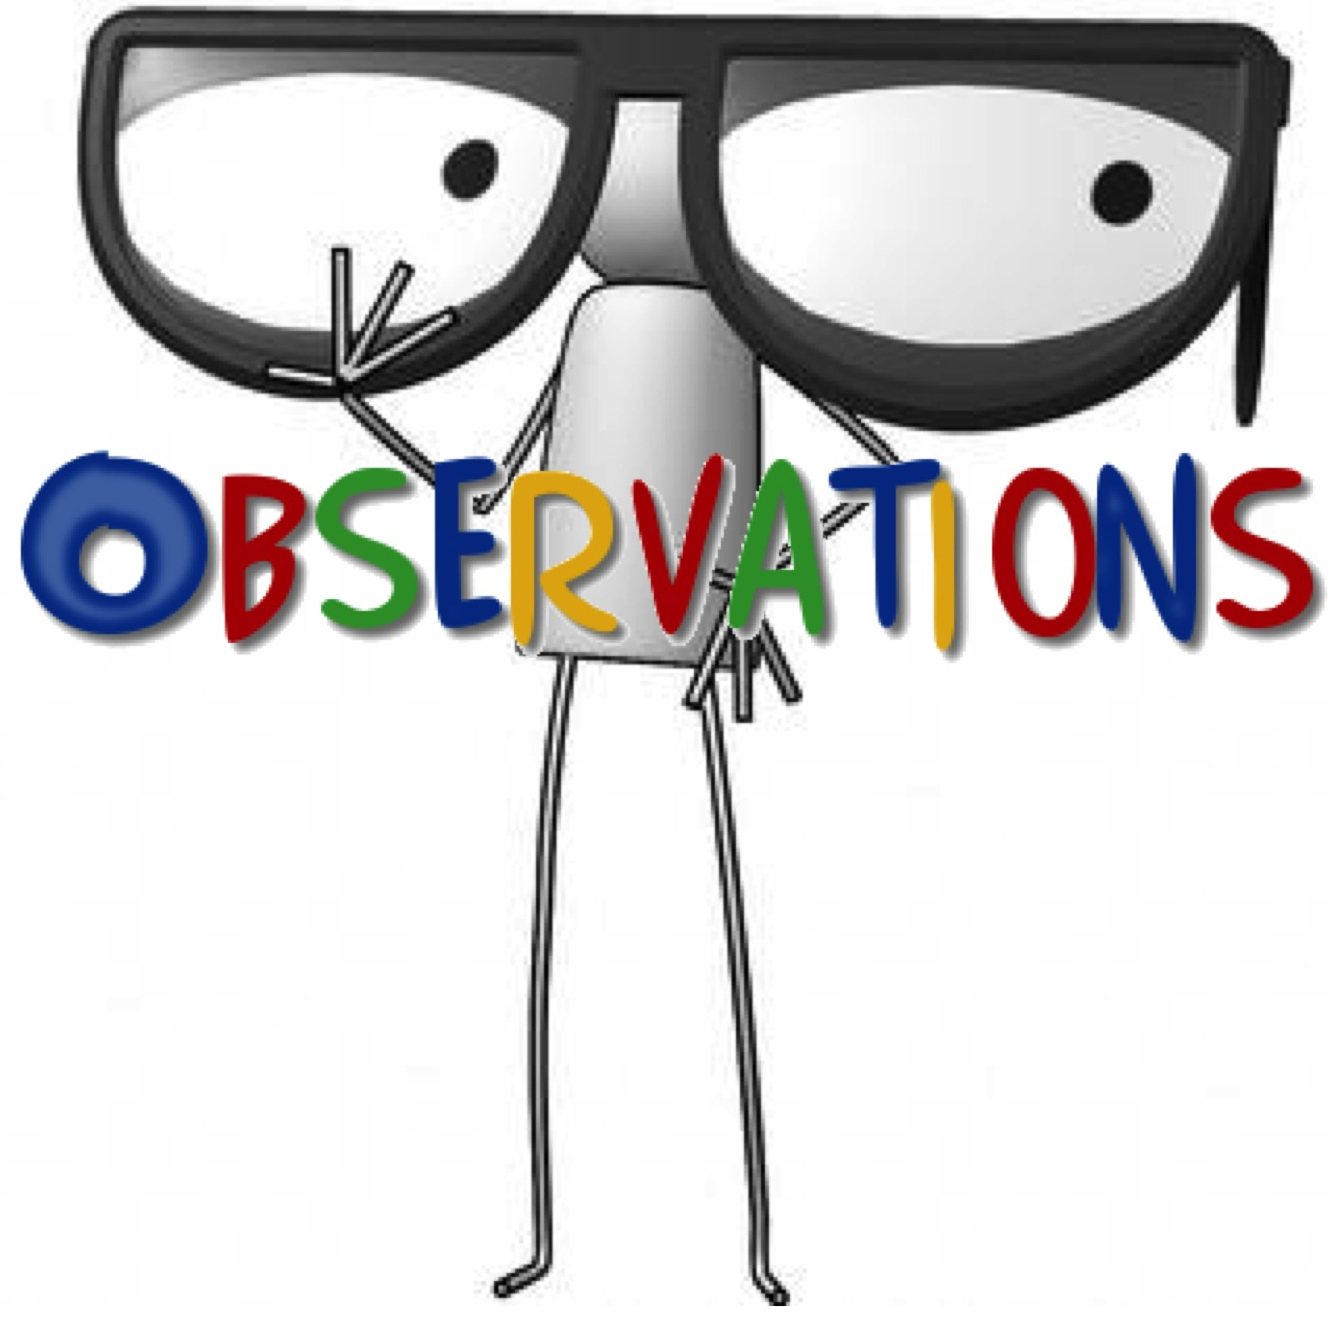 006 Observations Essay Example On Importance Of Social Rare Science Full